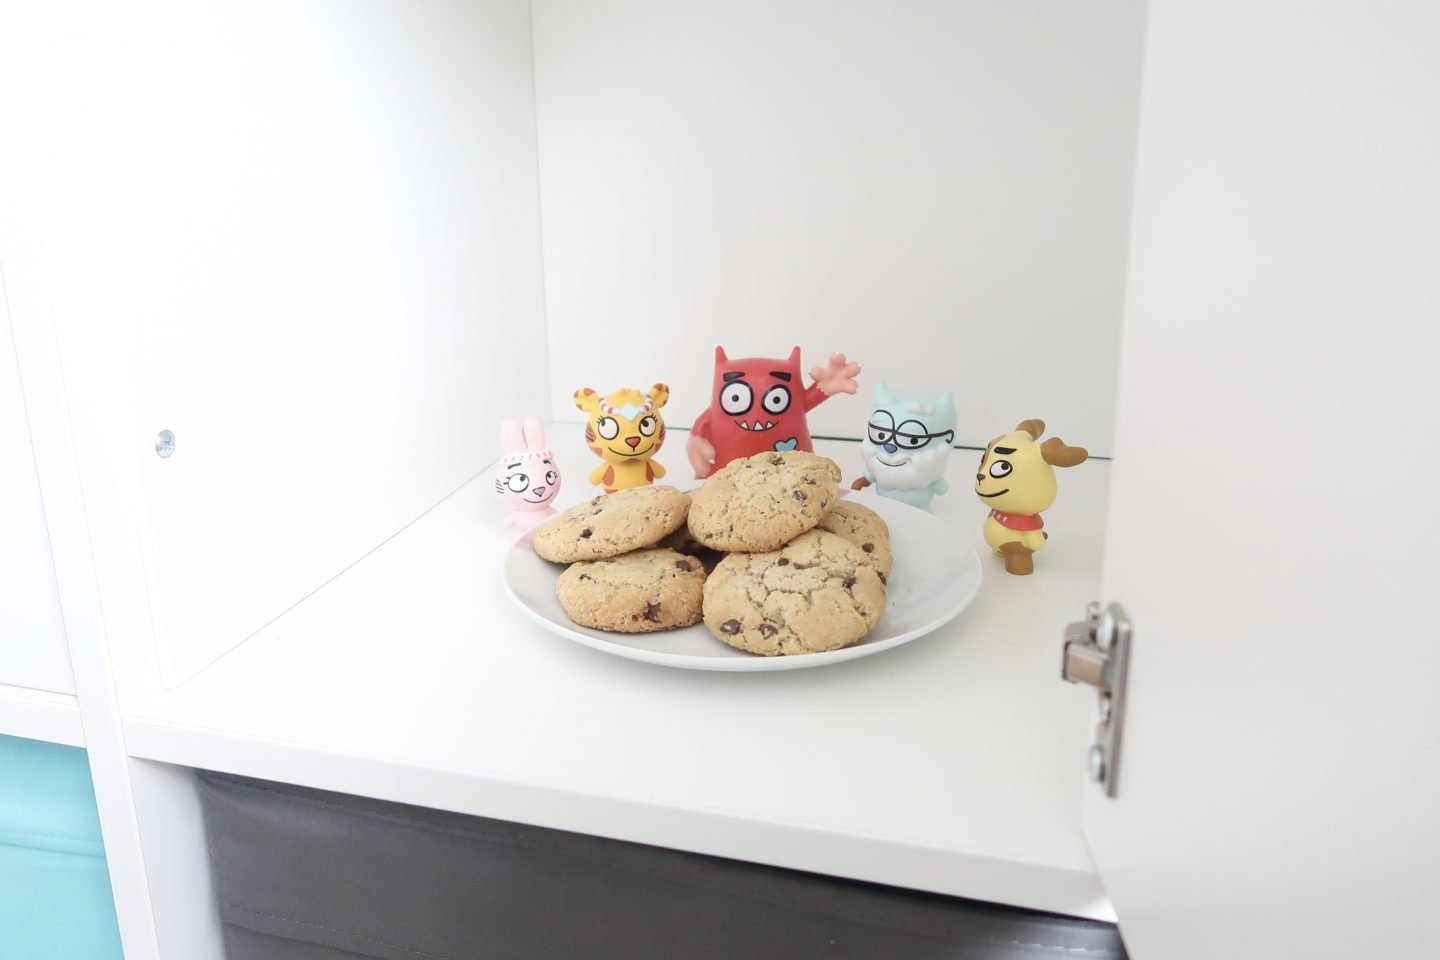 A plate of cookies surrounded by Love Monster figurines